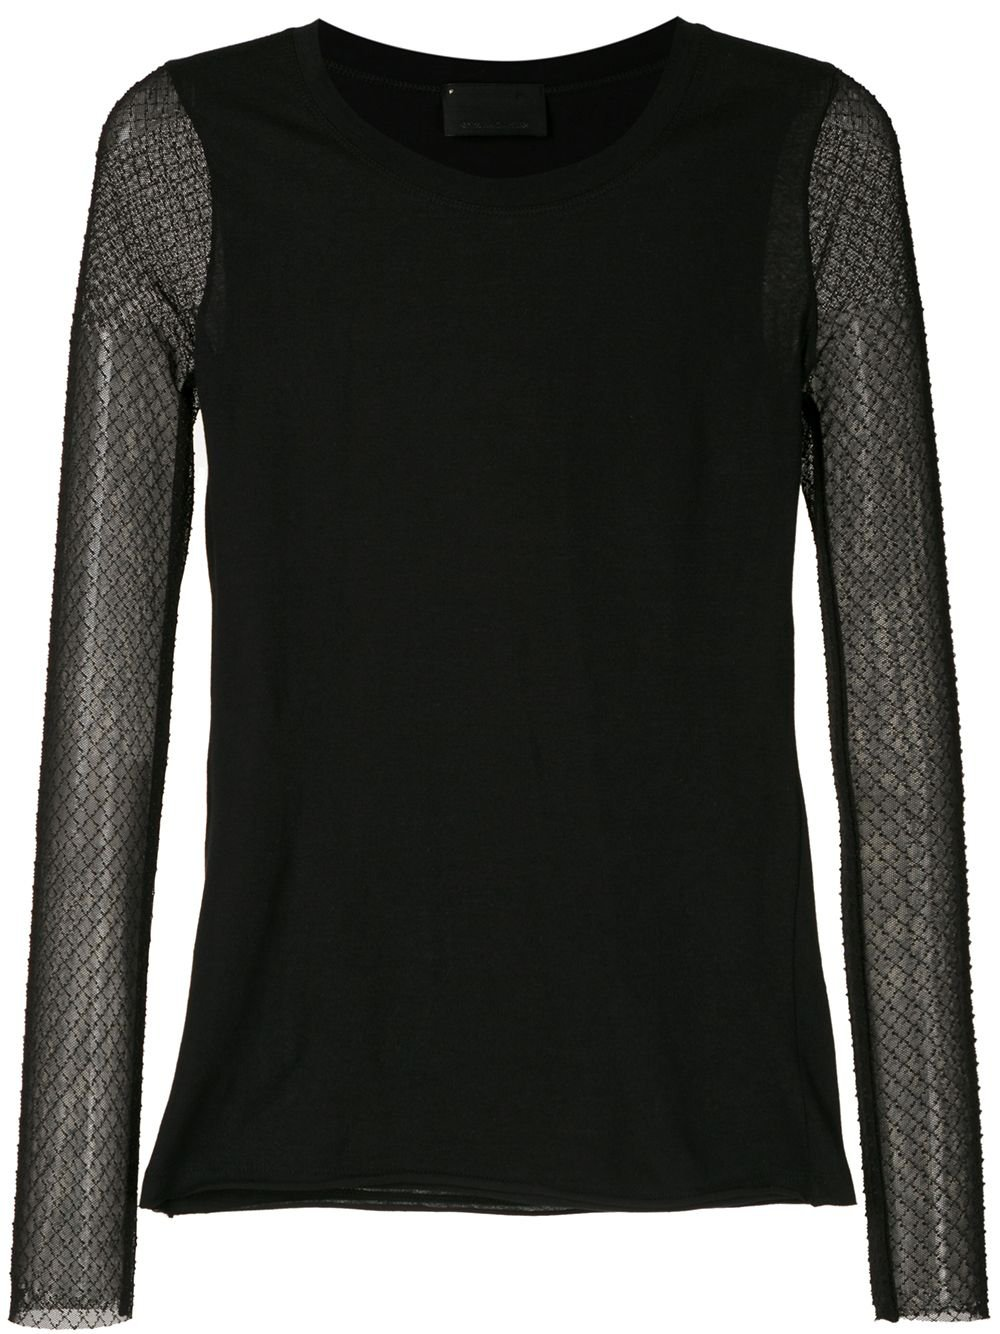 Andrea Bogosian Long Sleeves Blouse - Farfetch